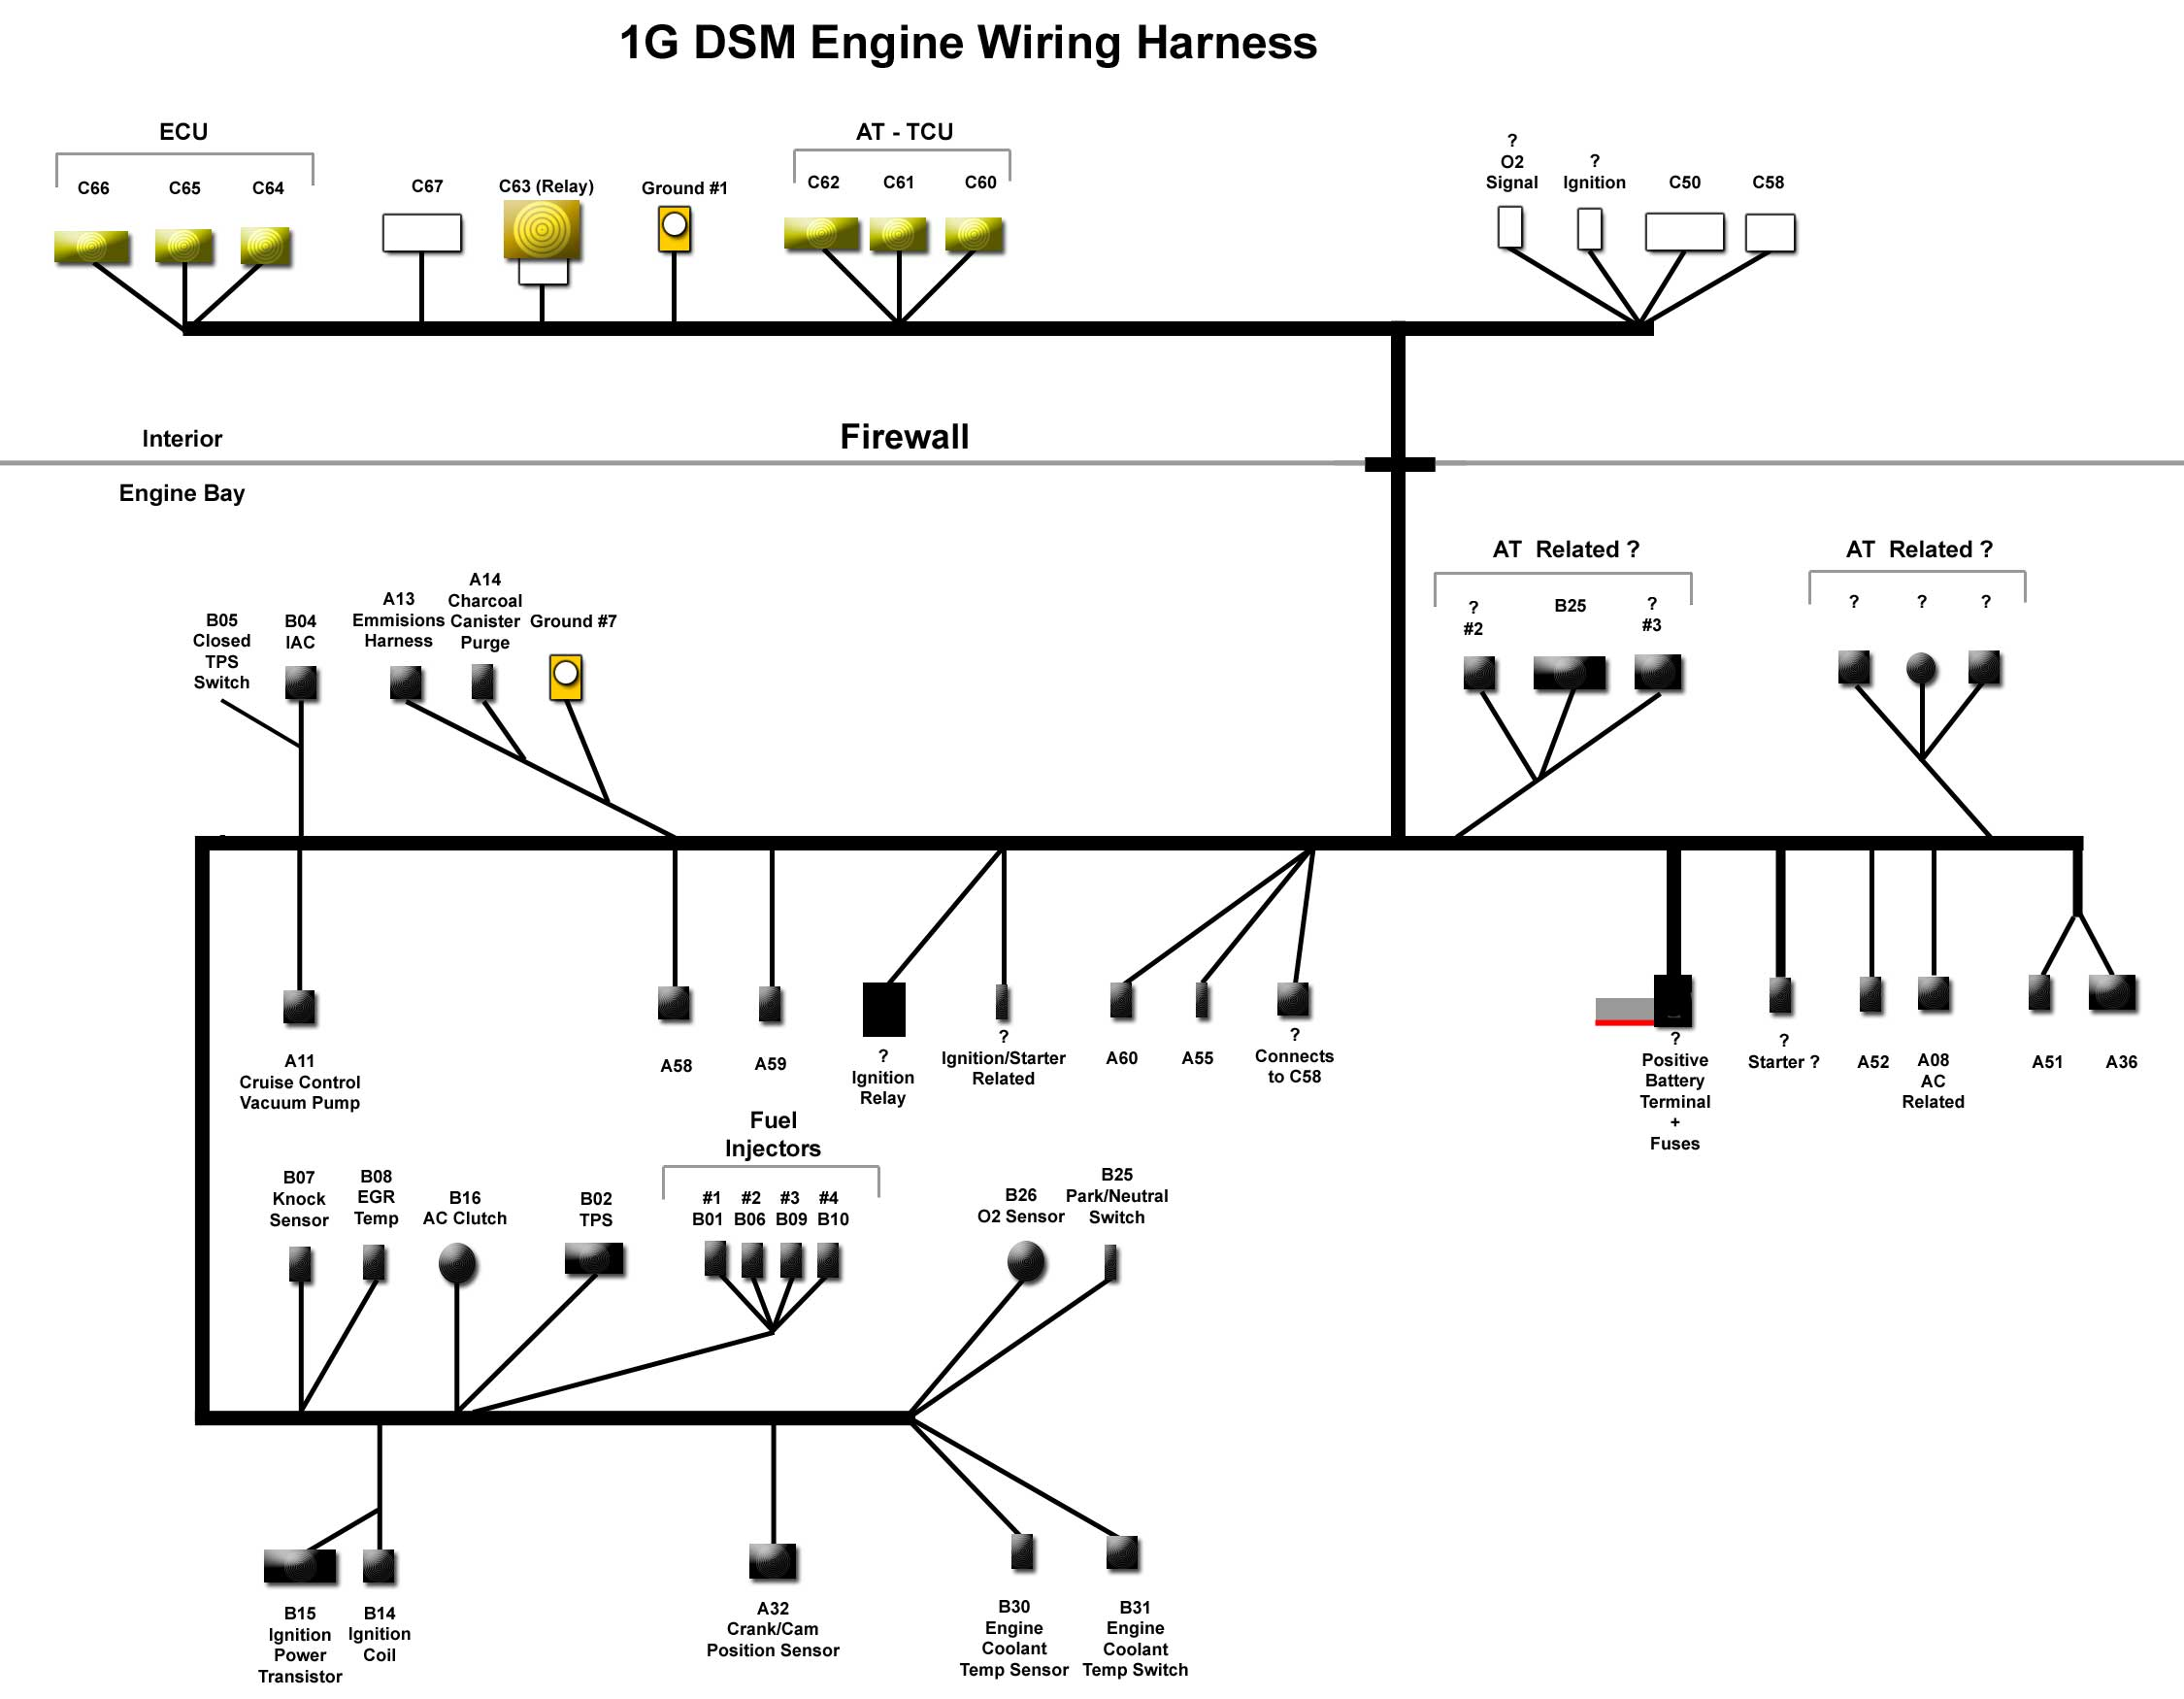 1G DSM EngineHarness 1gb dsm 4g63 turbo wiring harness diagram wiring harness diagram at n-0.co